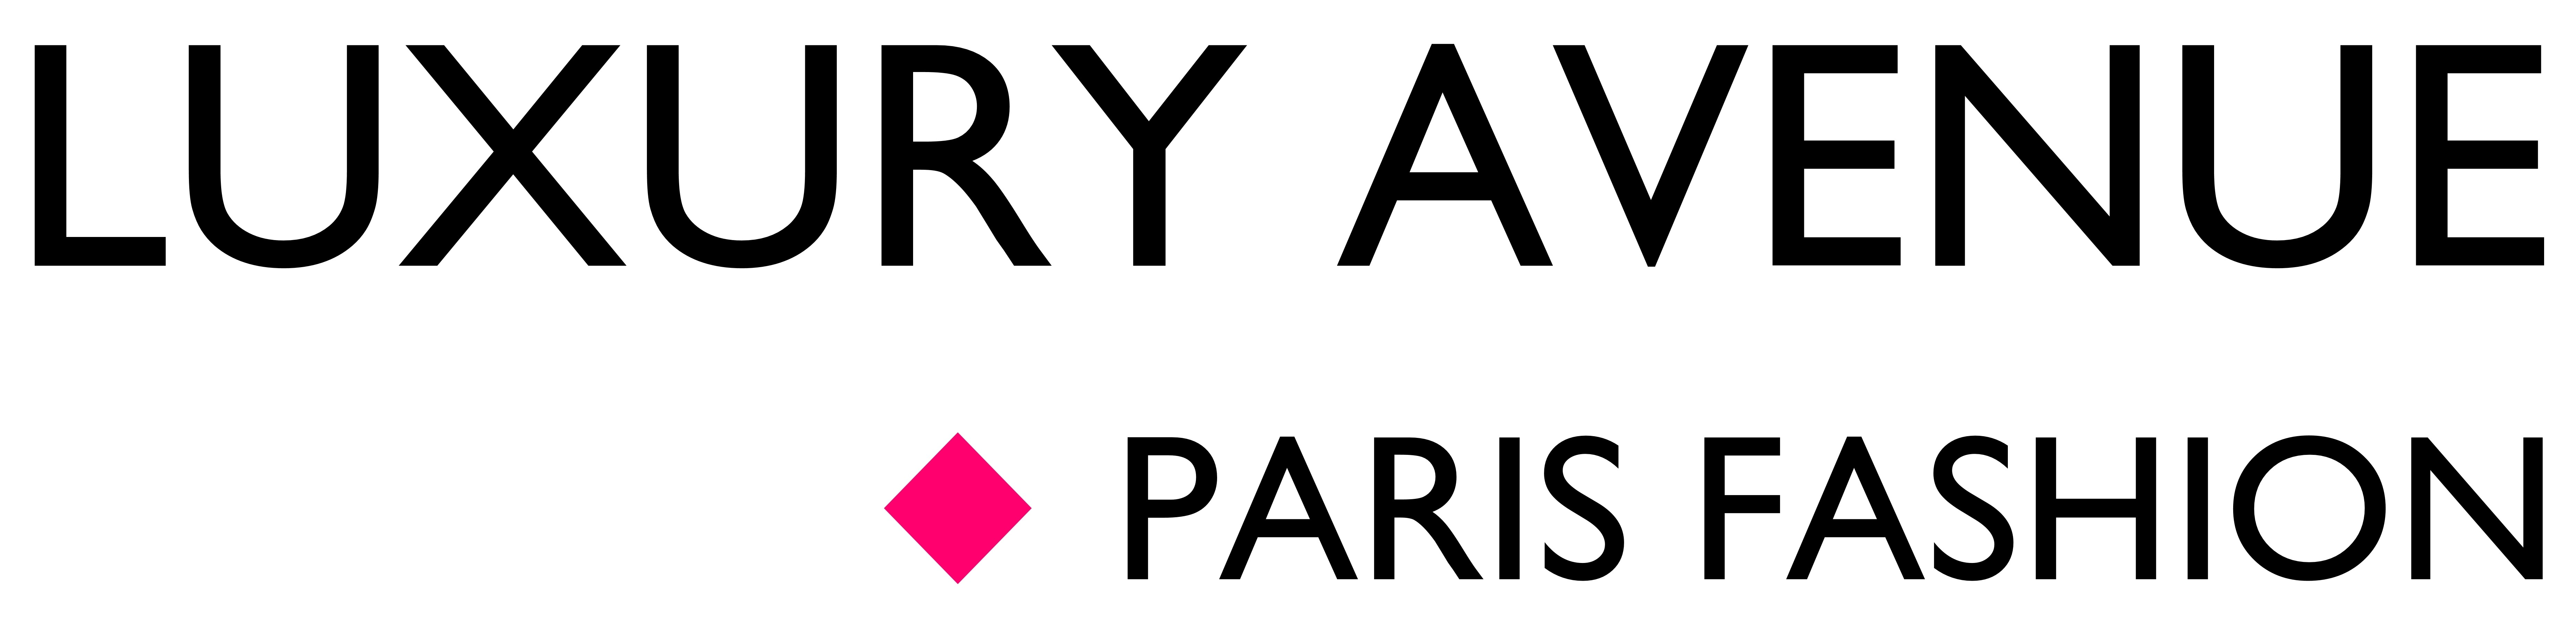 Luxury Avenue Paris